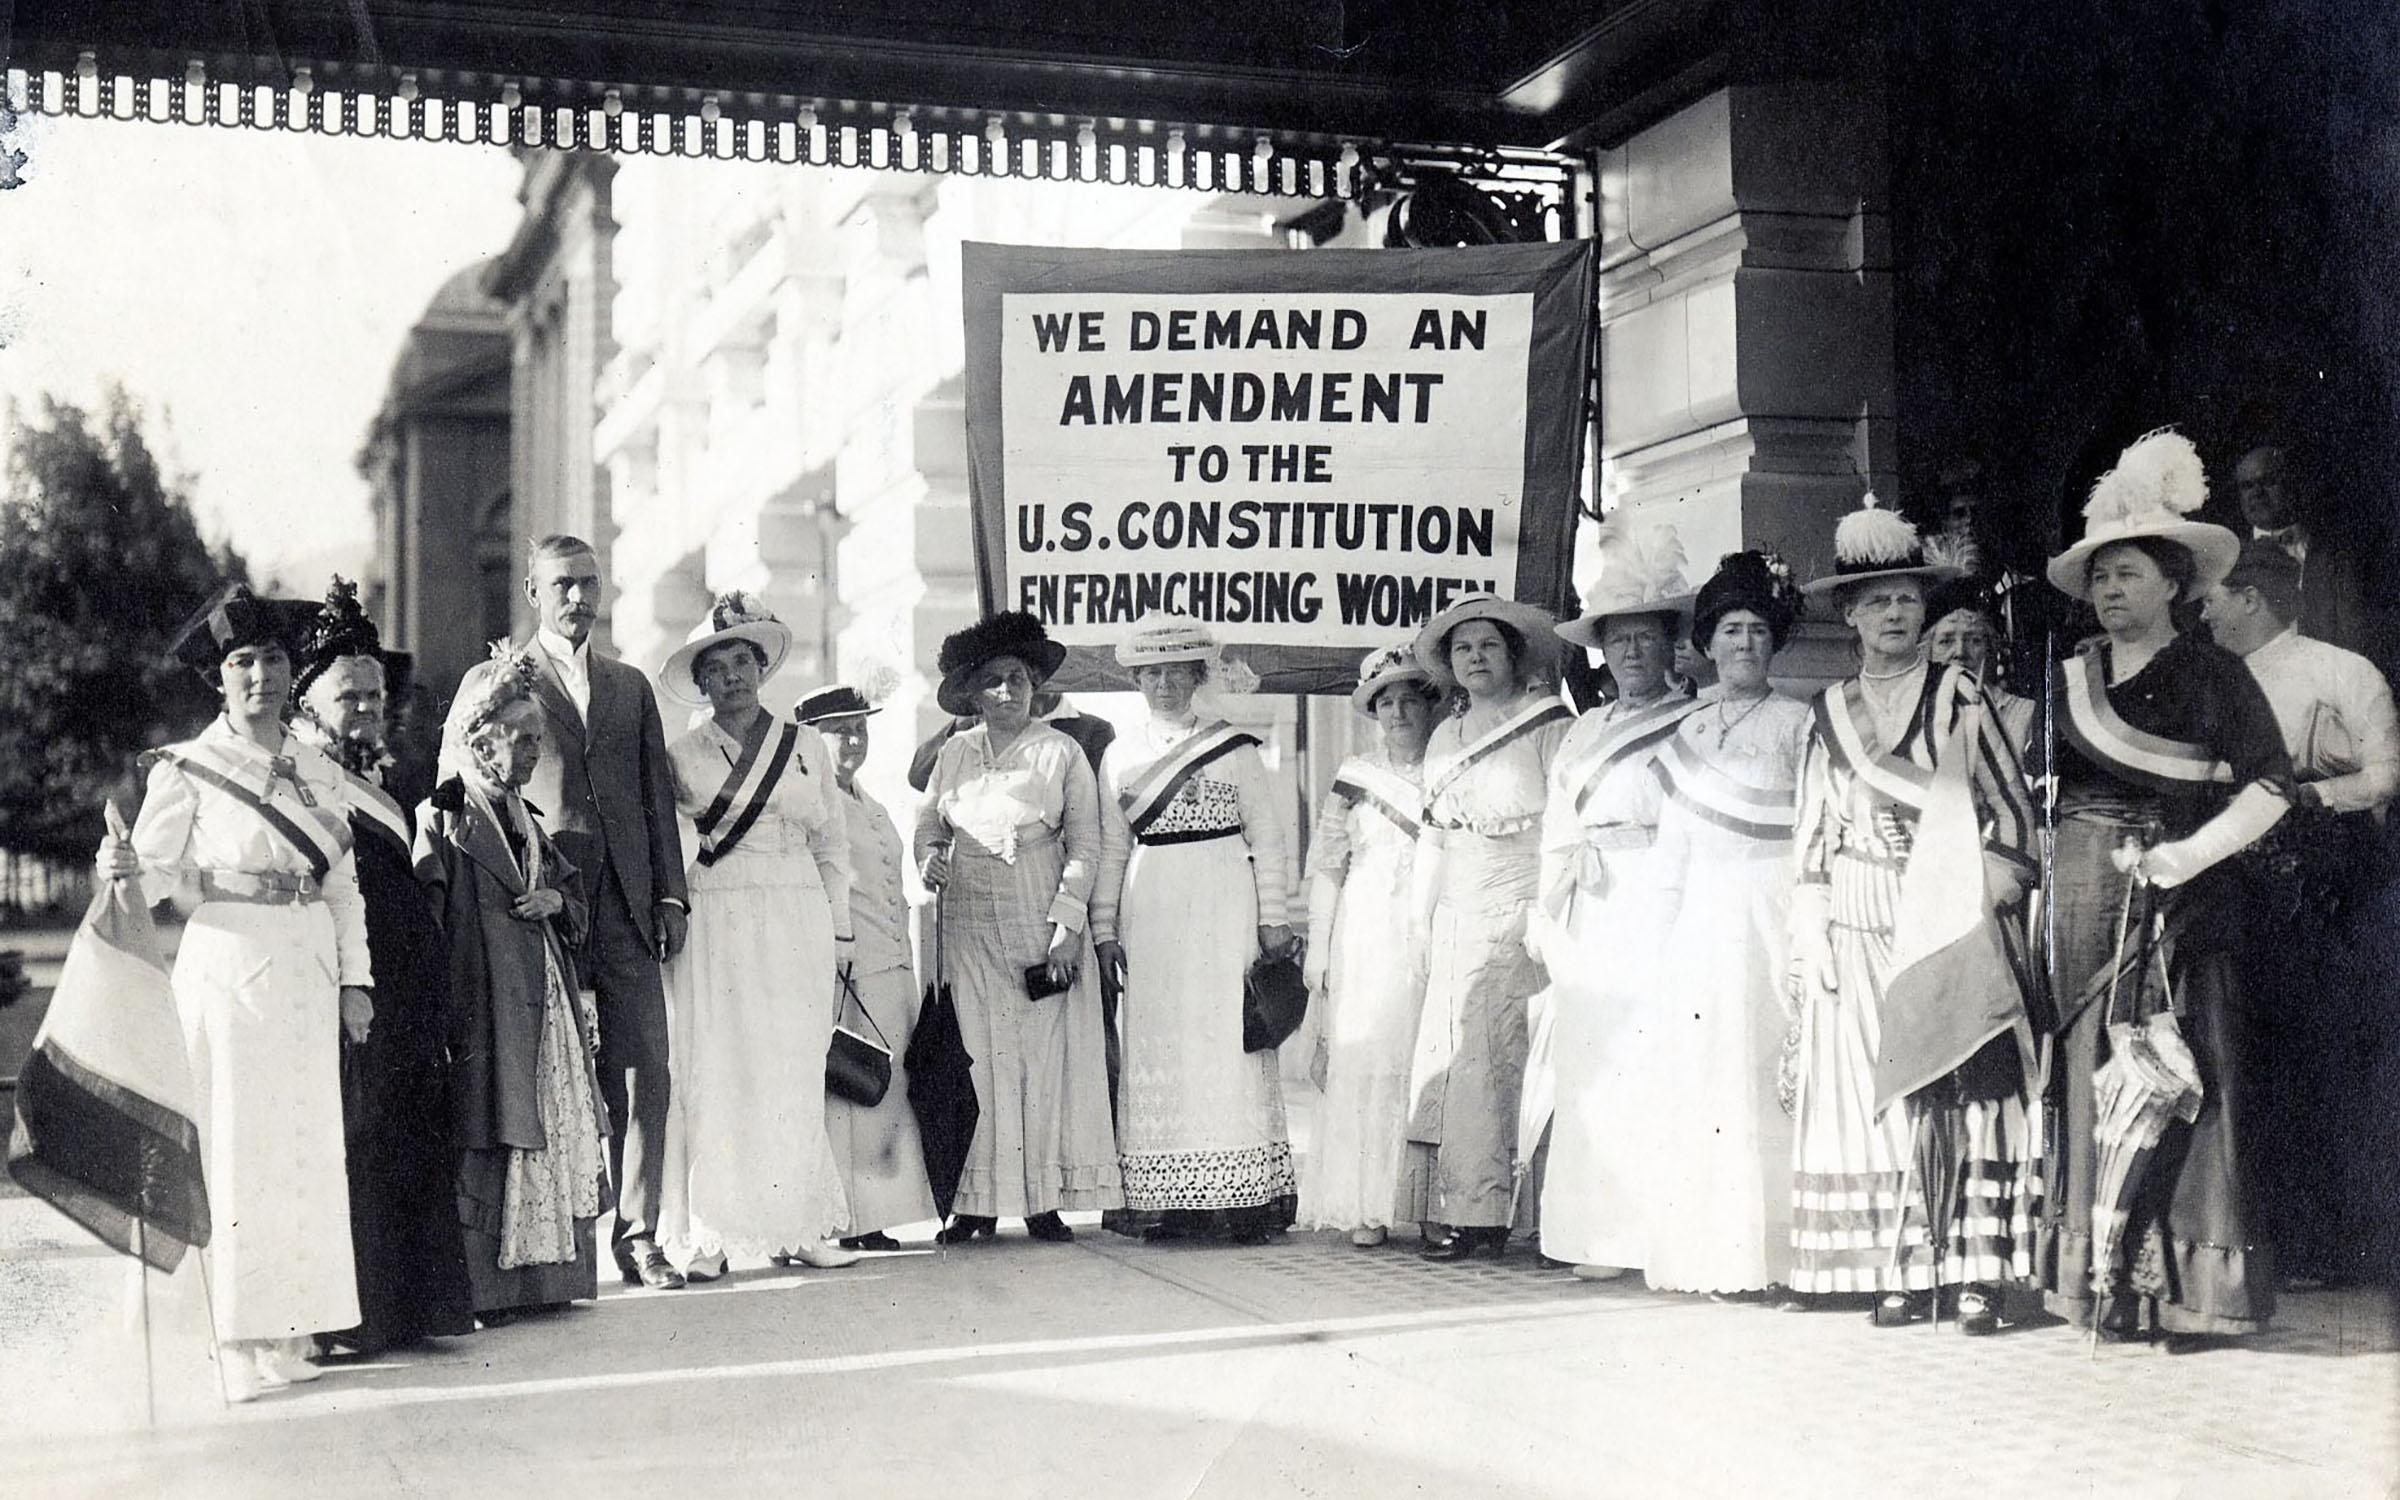 Susan B. Anthony stands with a group of  Women Suffrage Leaders in a group in front of Hotel Utah in 1915 behind the groups a banner reads We demand an amendment to the US Constitution Enfranchising Women.